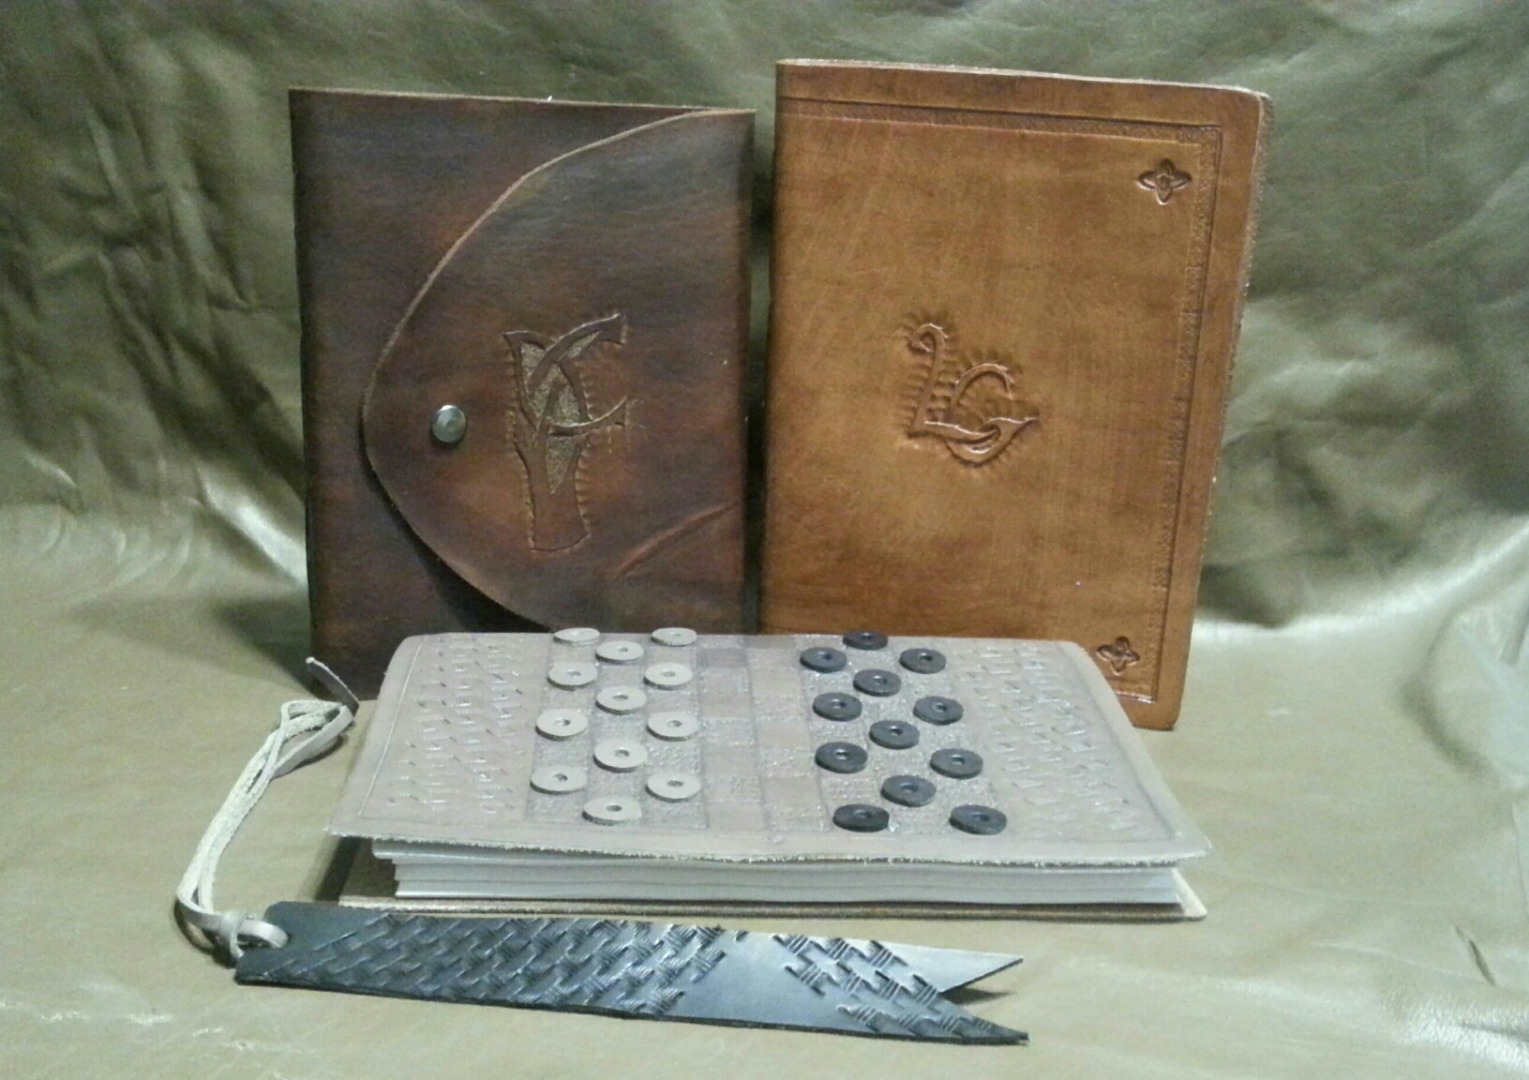 Picture of Leather Bound Book With Replaceable Pages and Built in Checkers Game